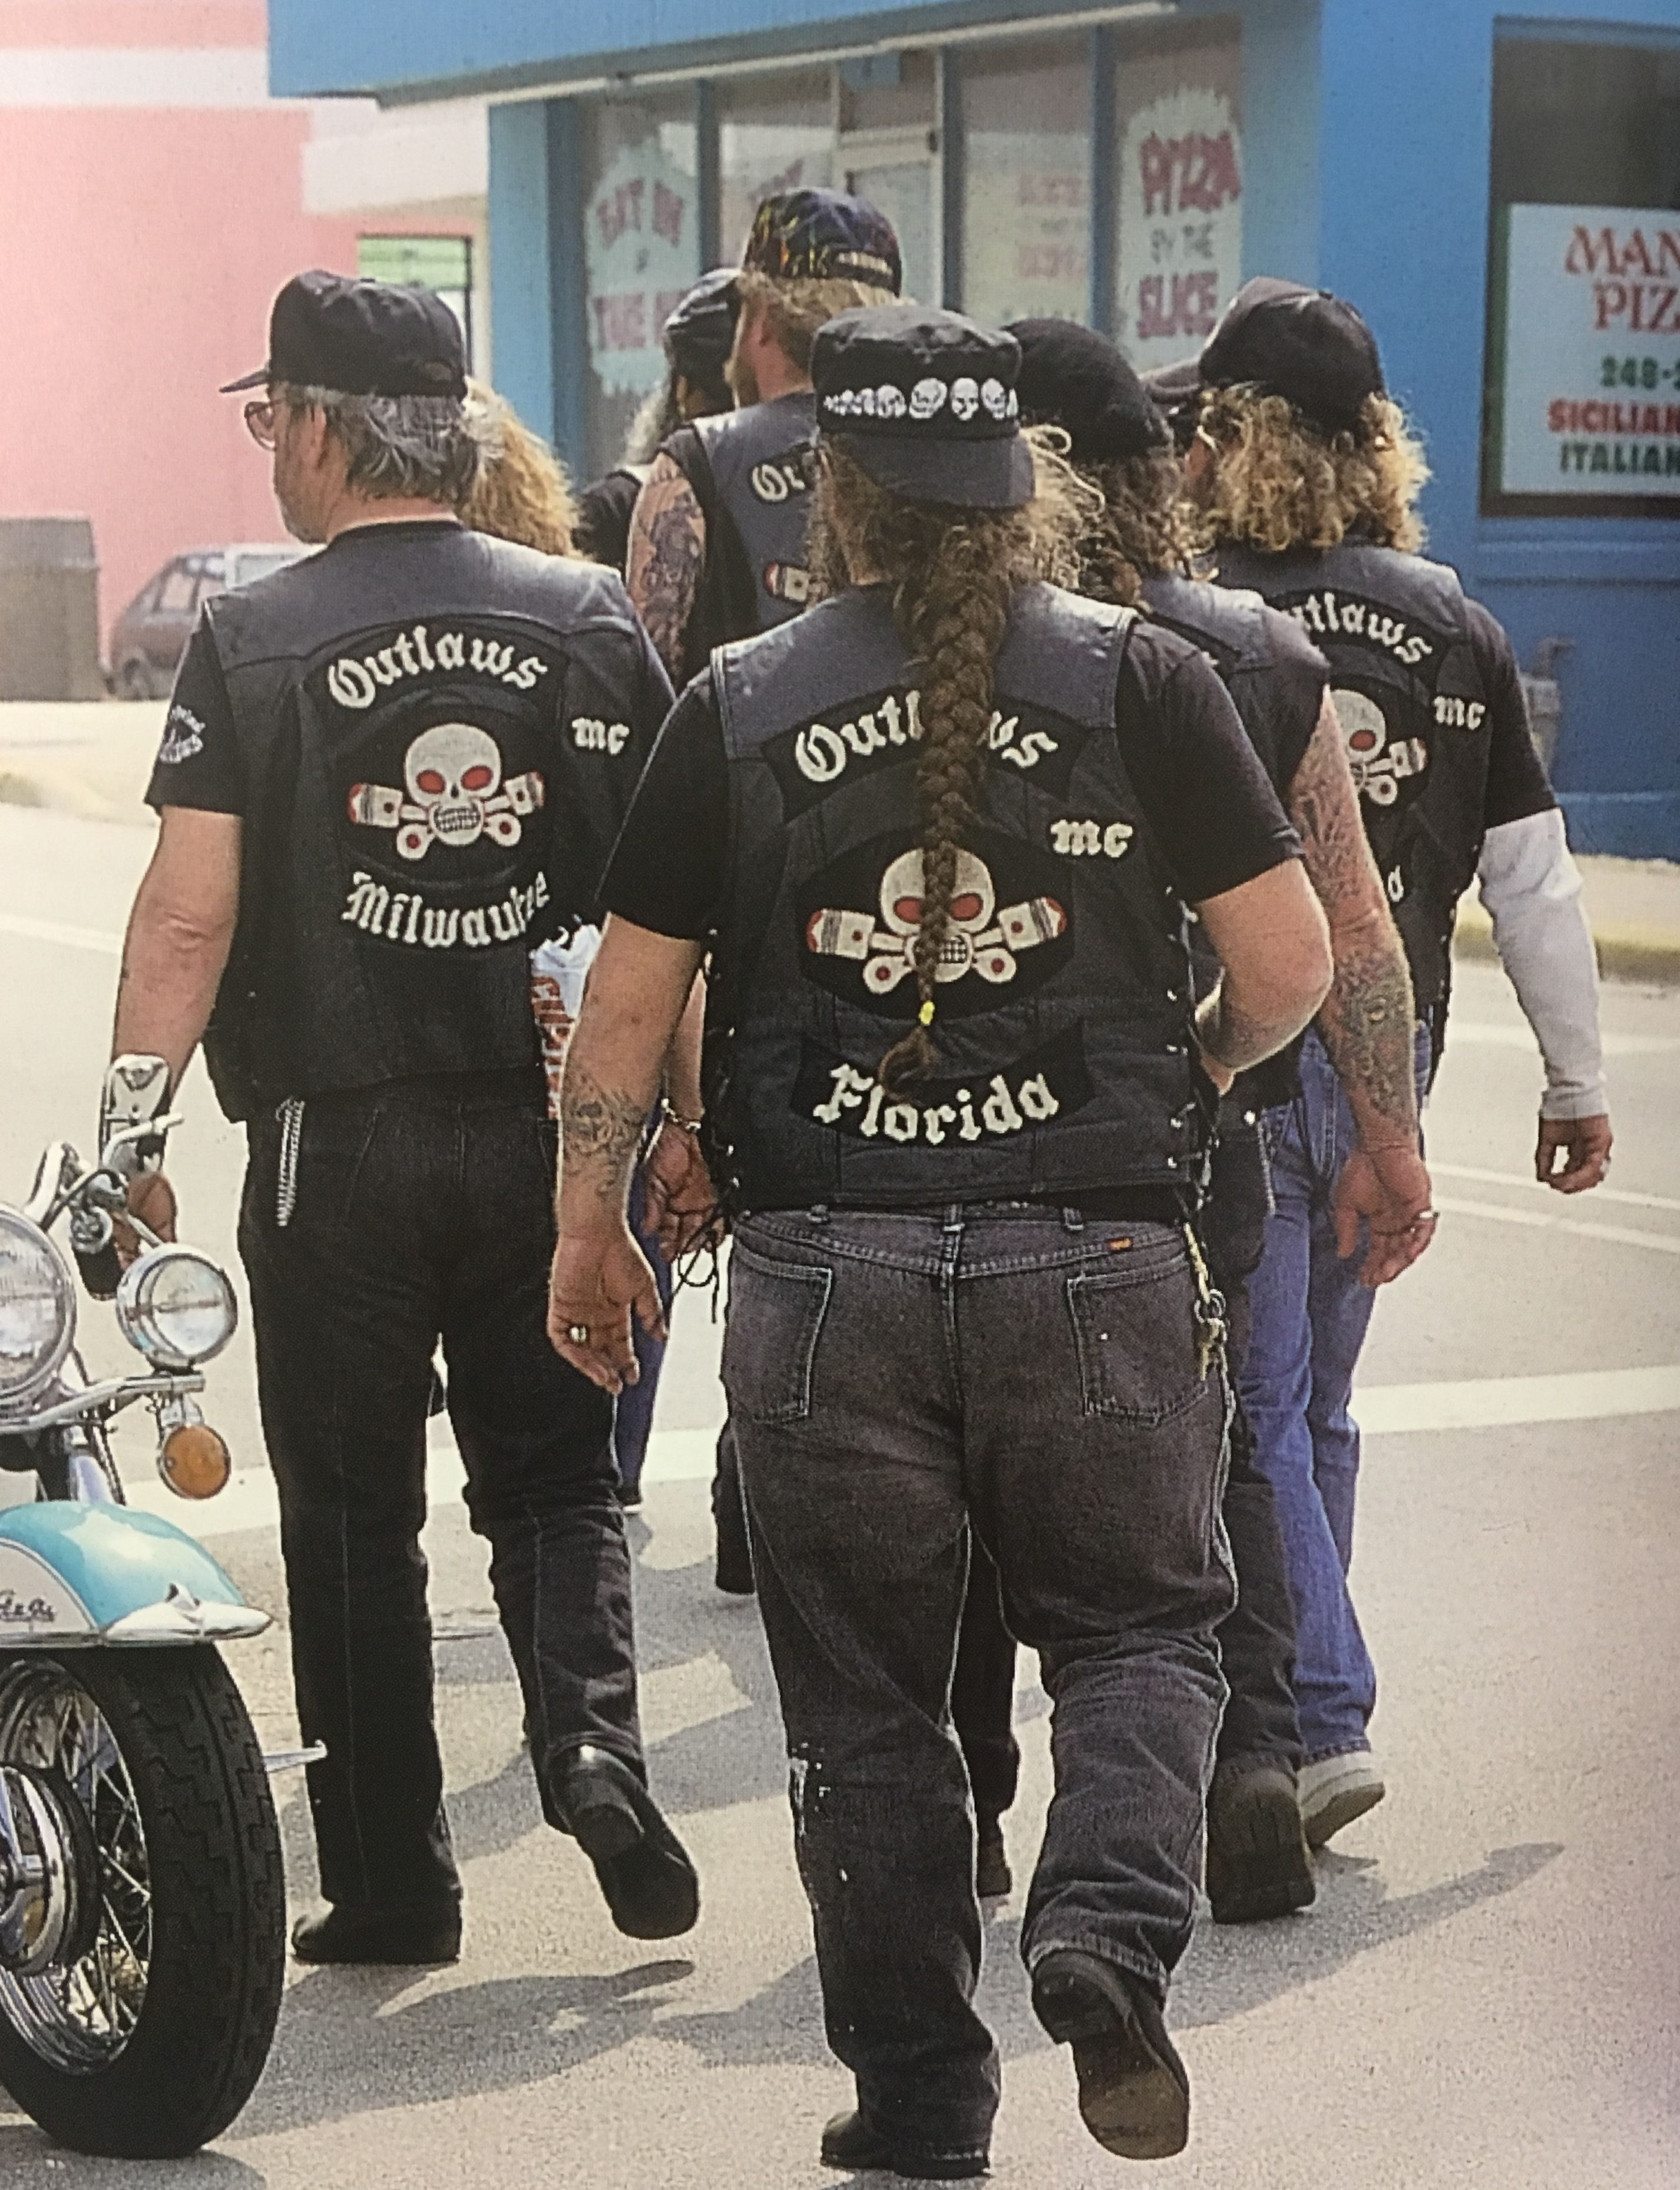 Pin On Motorcycle Club Life From Around The World